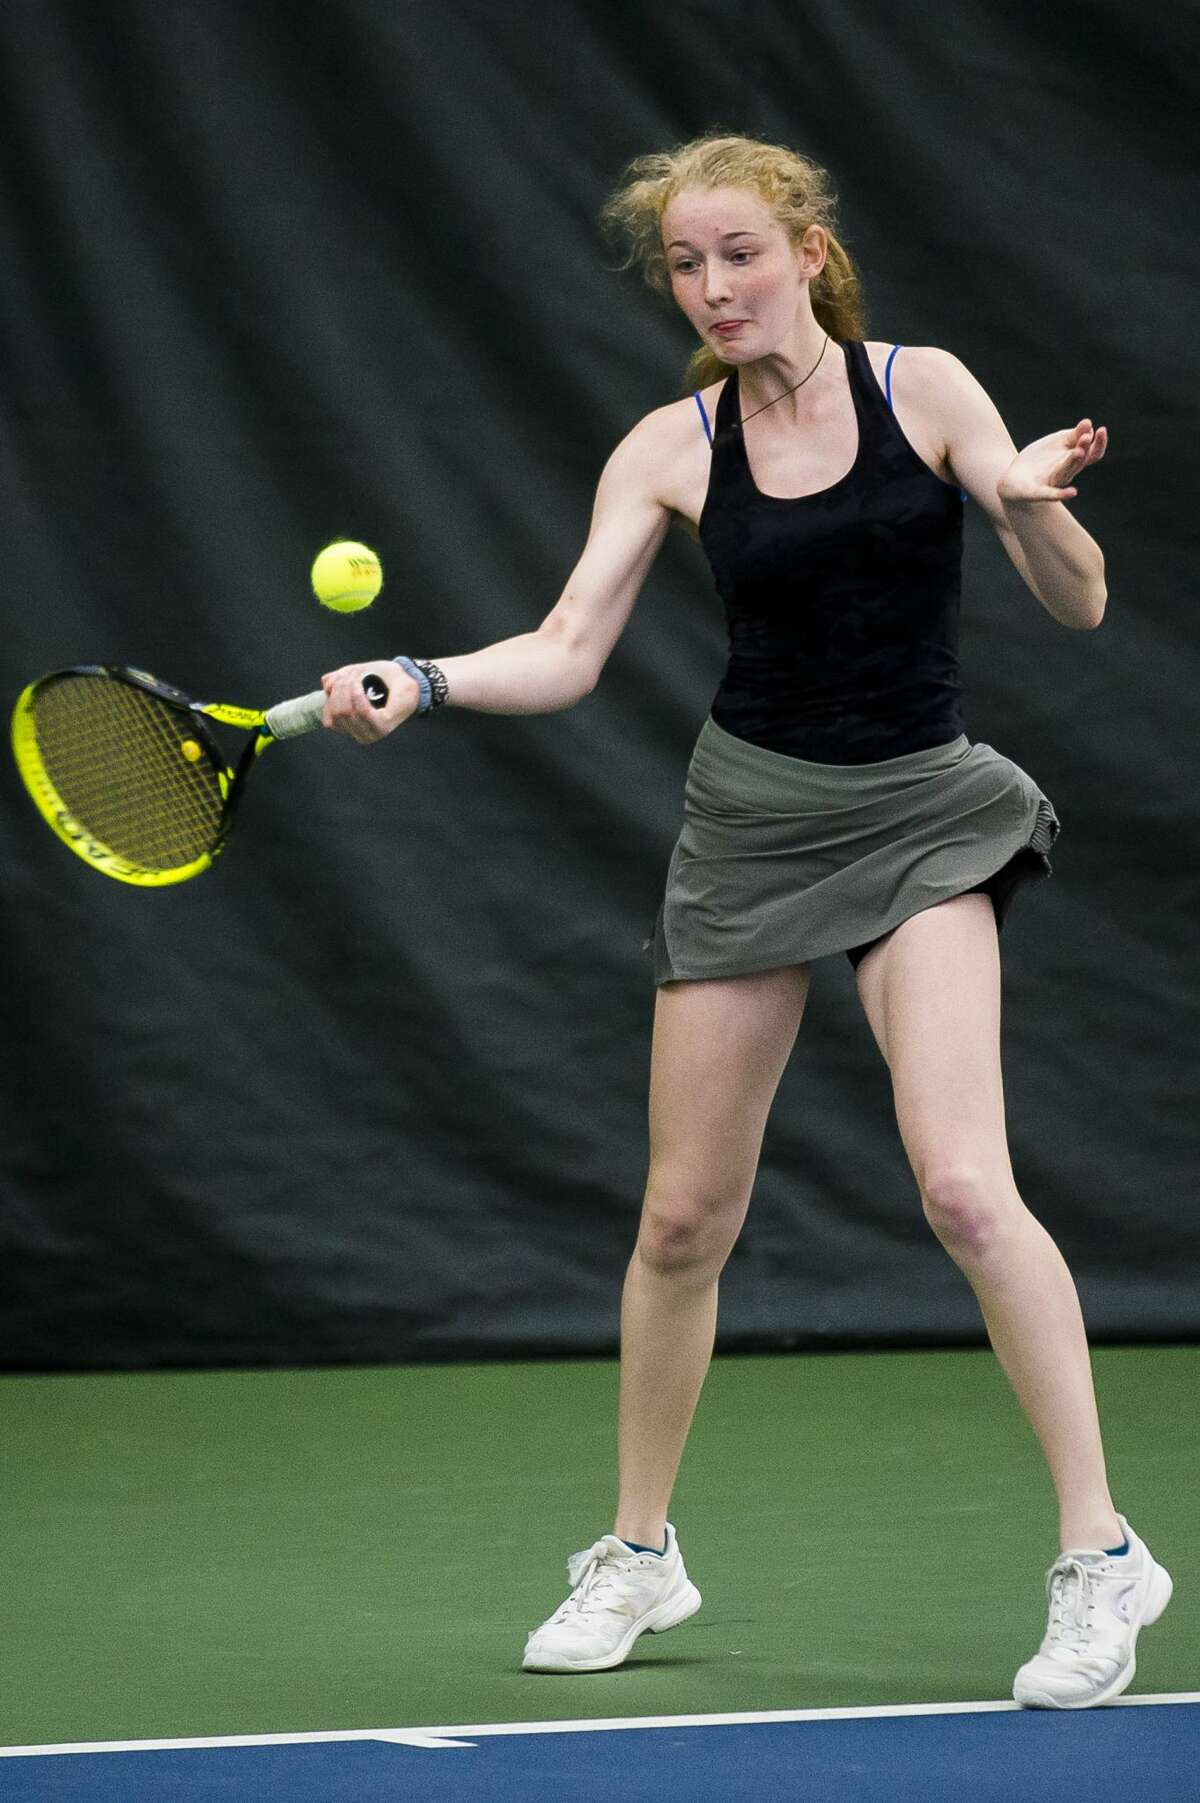 Dow's Laura Leiti returns the ball during a #3 singles match in the Division 1 state tennis tournament on Friday, May 31, 2019 at the Greater Midland Tennis Center. (Katy Kildee/kkildee@mdn.net)